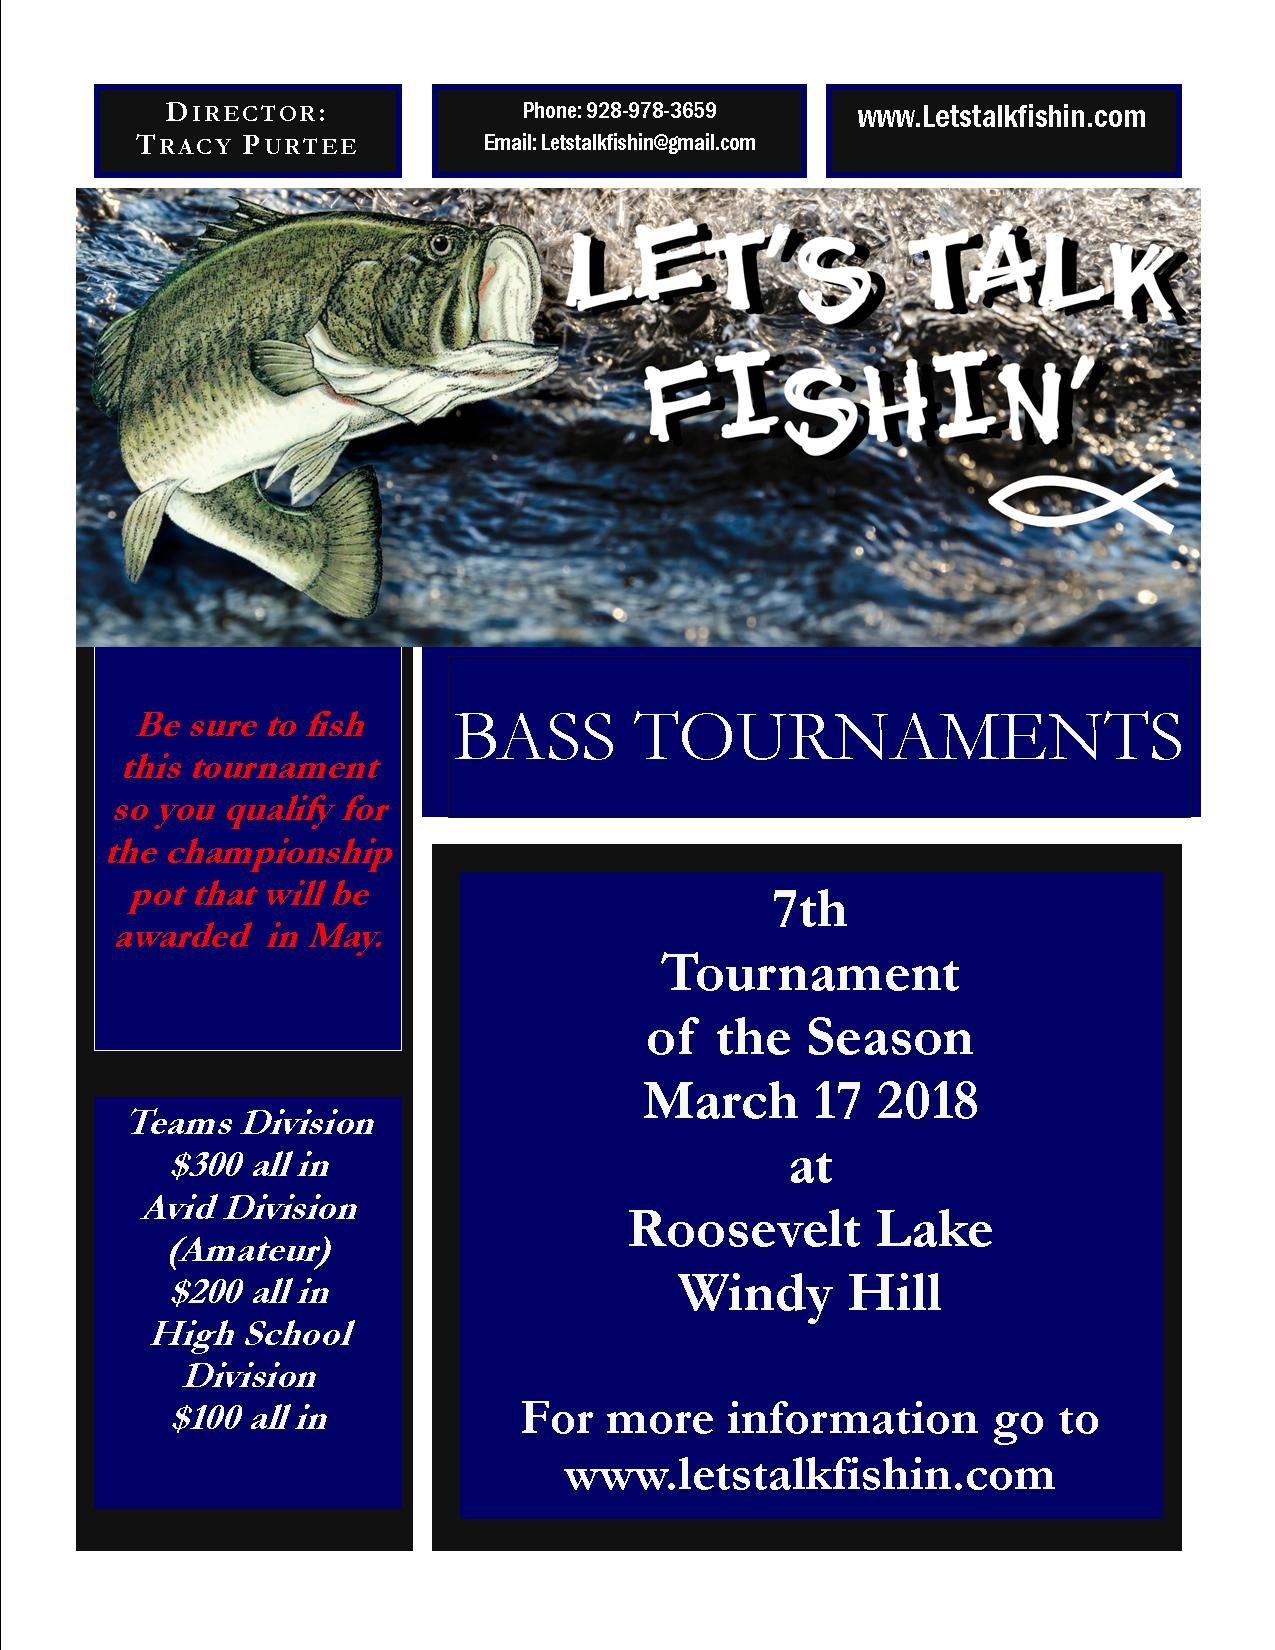 Click image for larger version  Name:7th Tournament.jpg Views:1053 Size:283.6 KB ID:96826